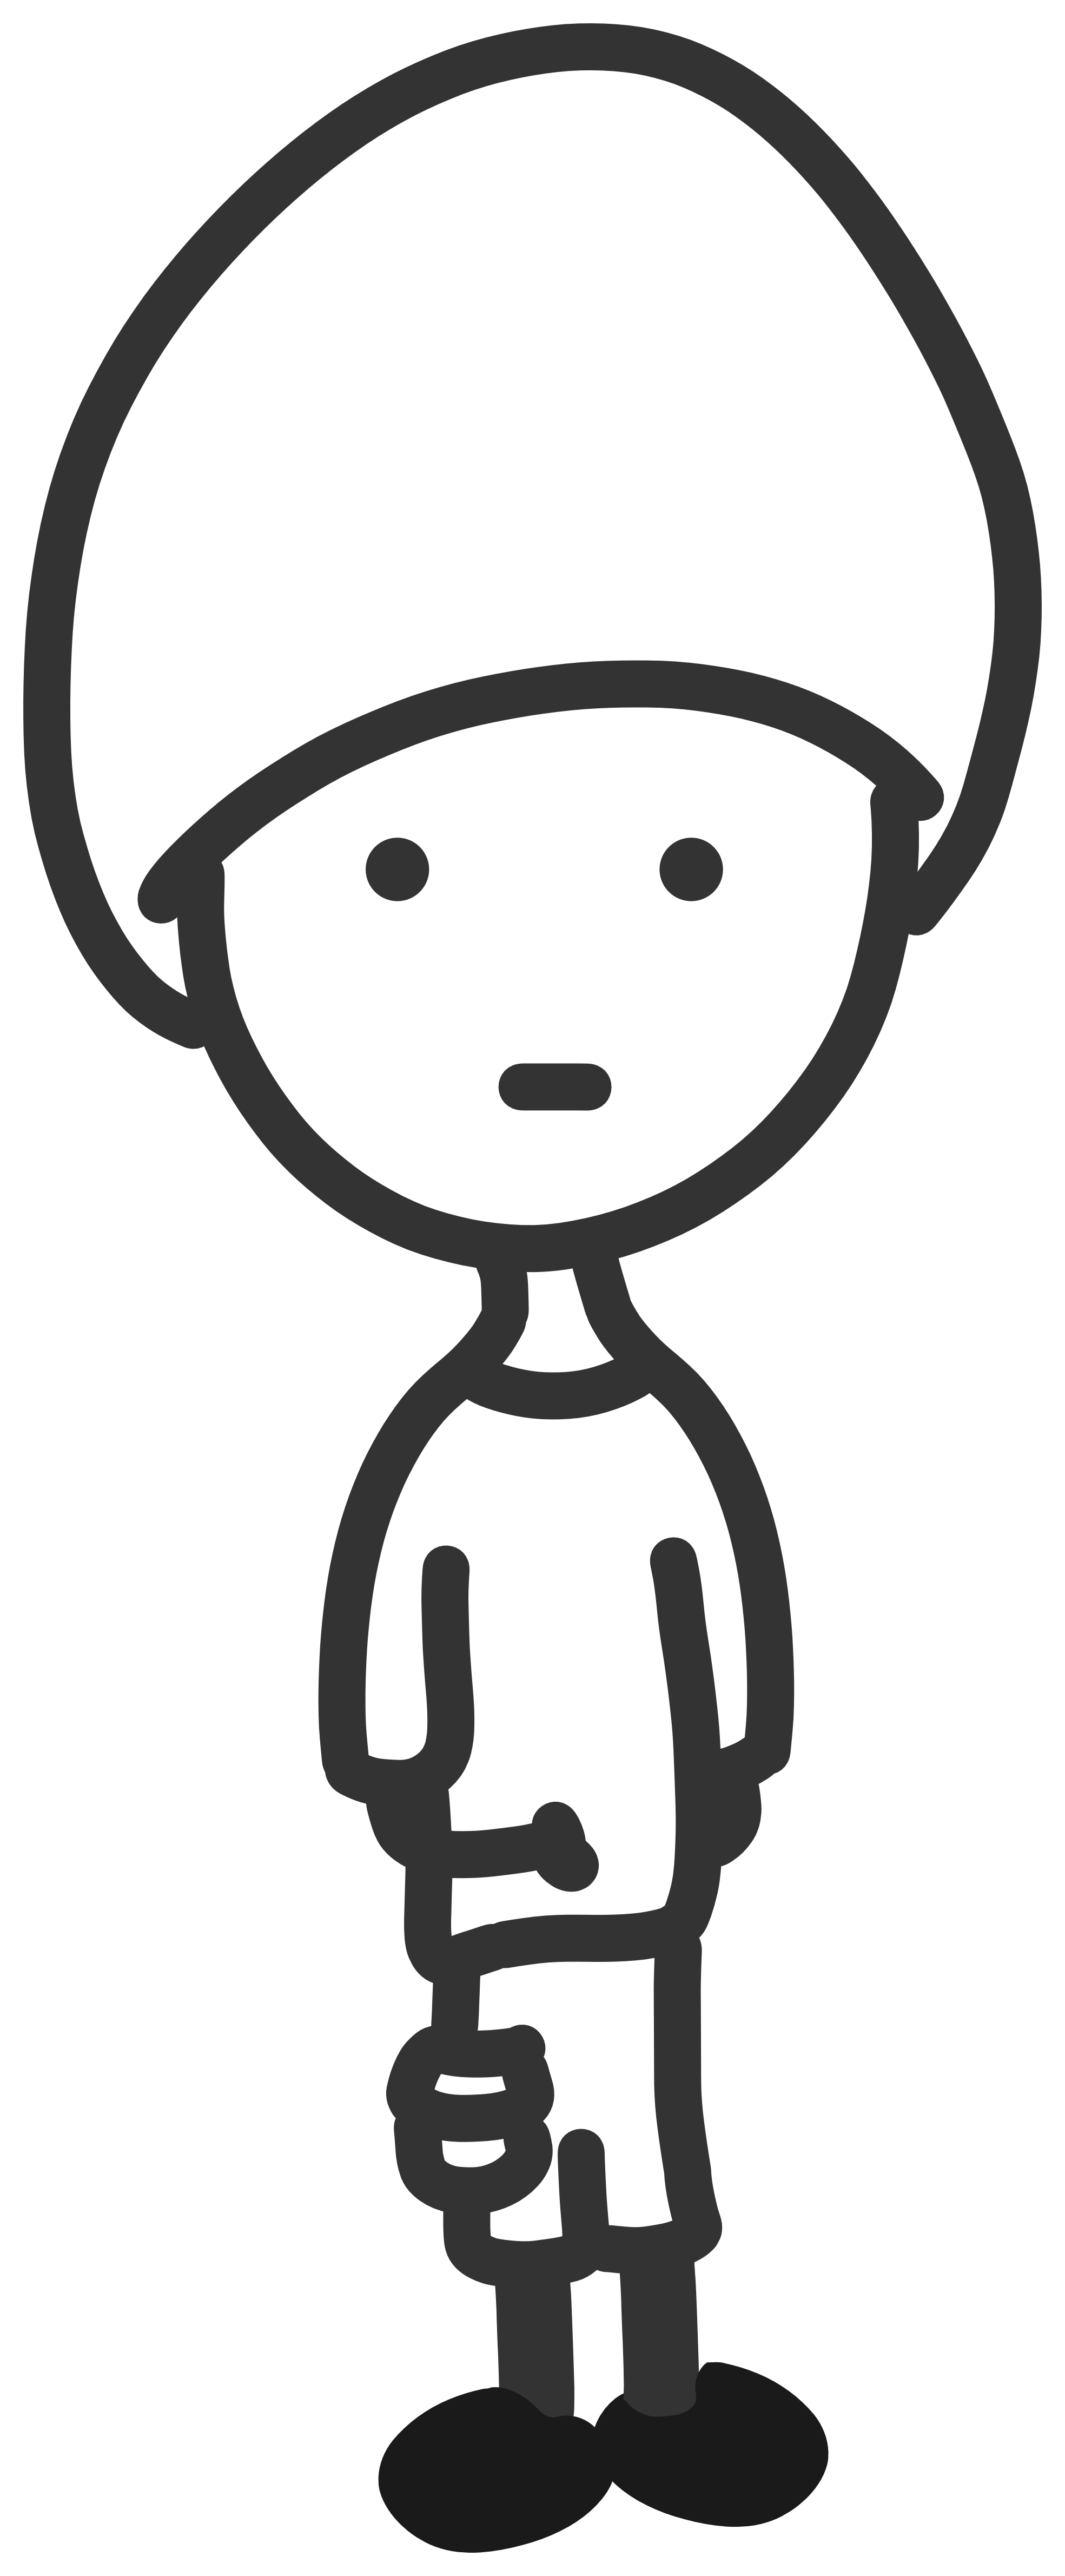 Line Drawing Quiet : Quiet clipart black and white panda free